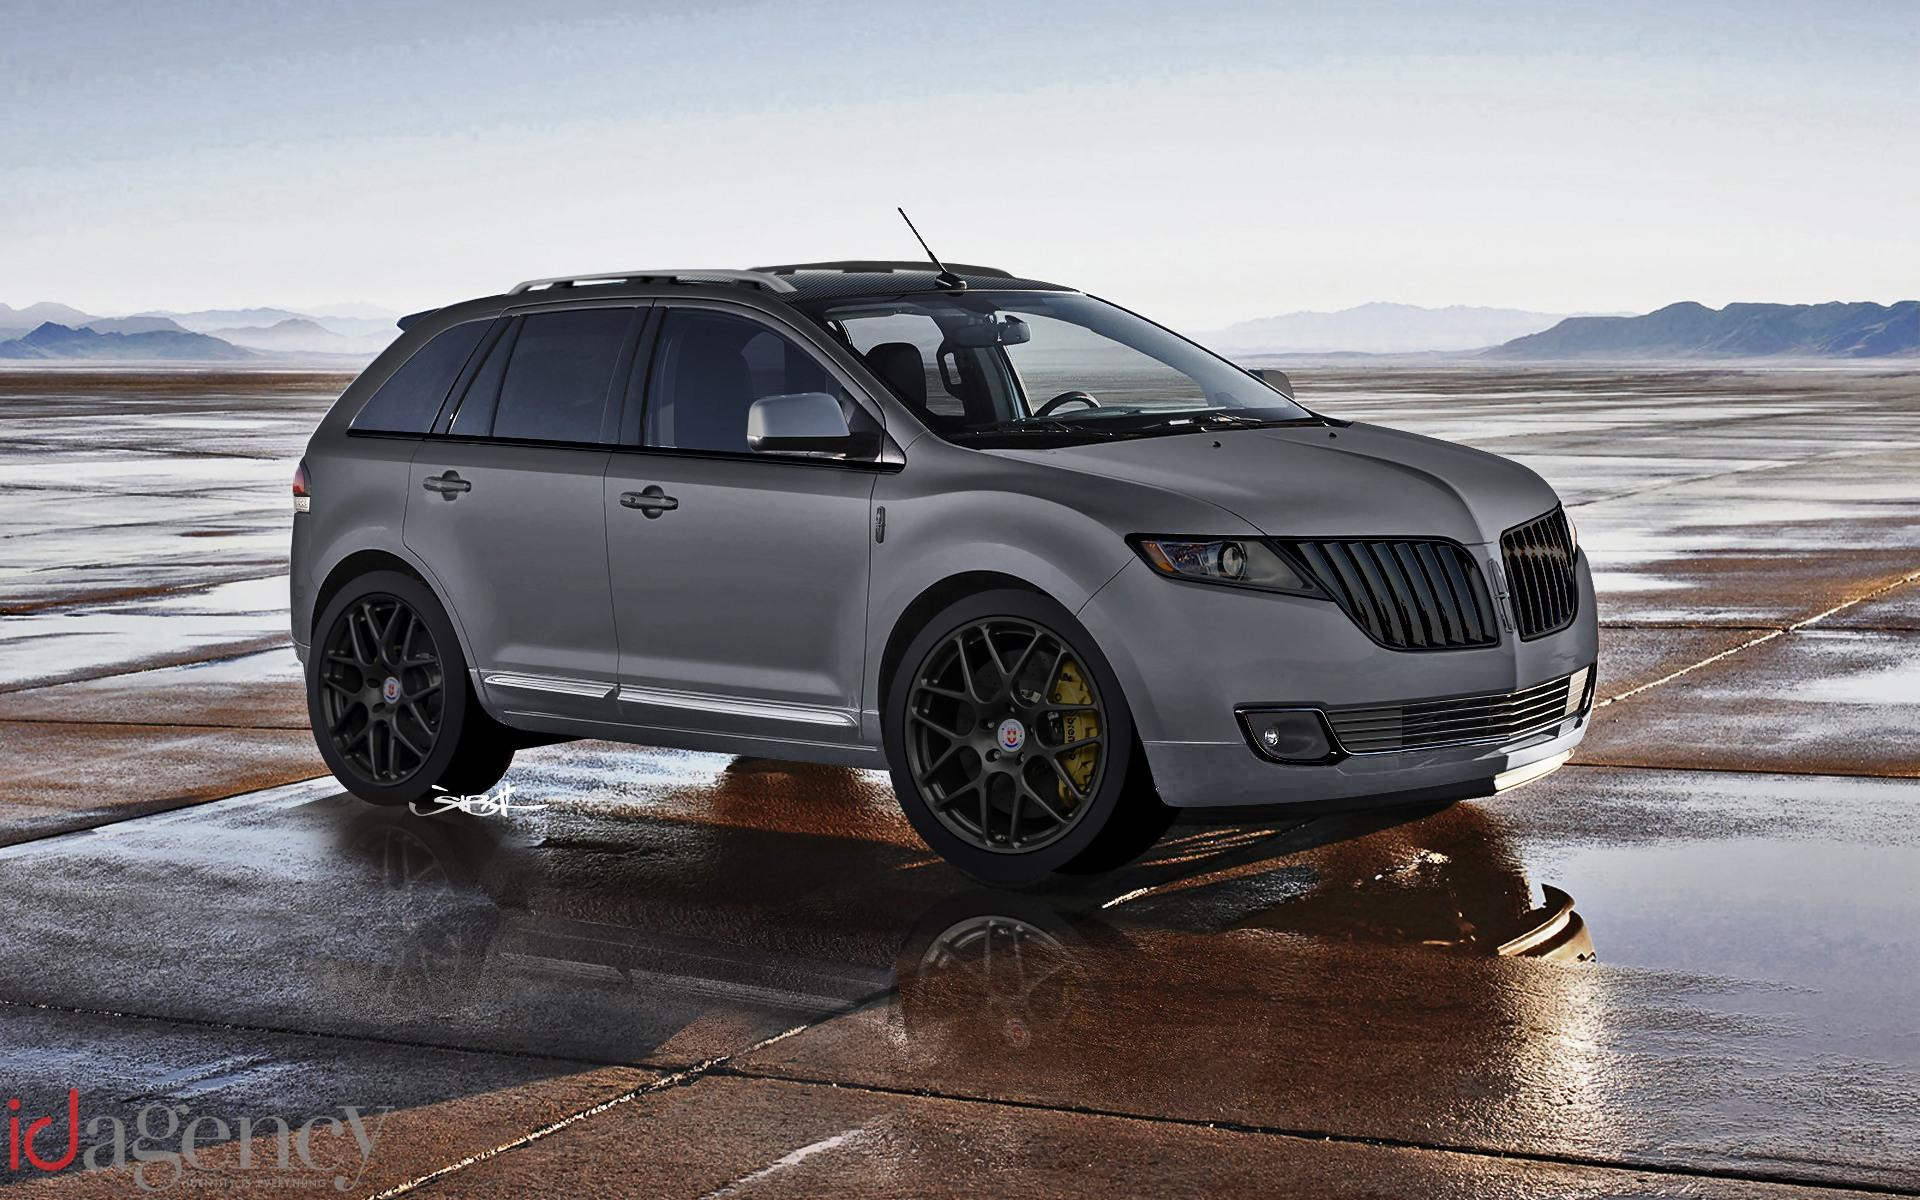 2011 Lincoln Mkx By Id Agency News And Information